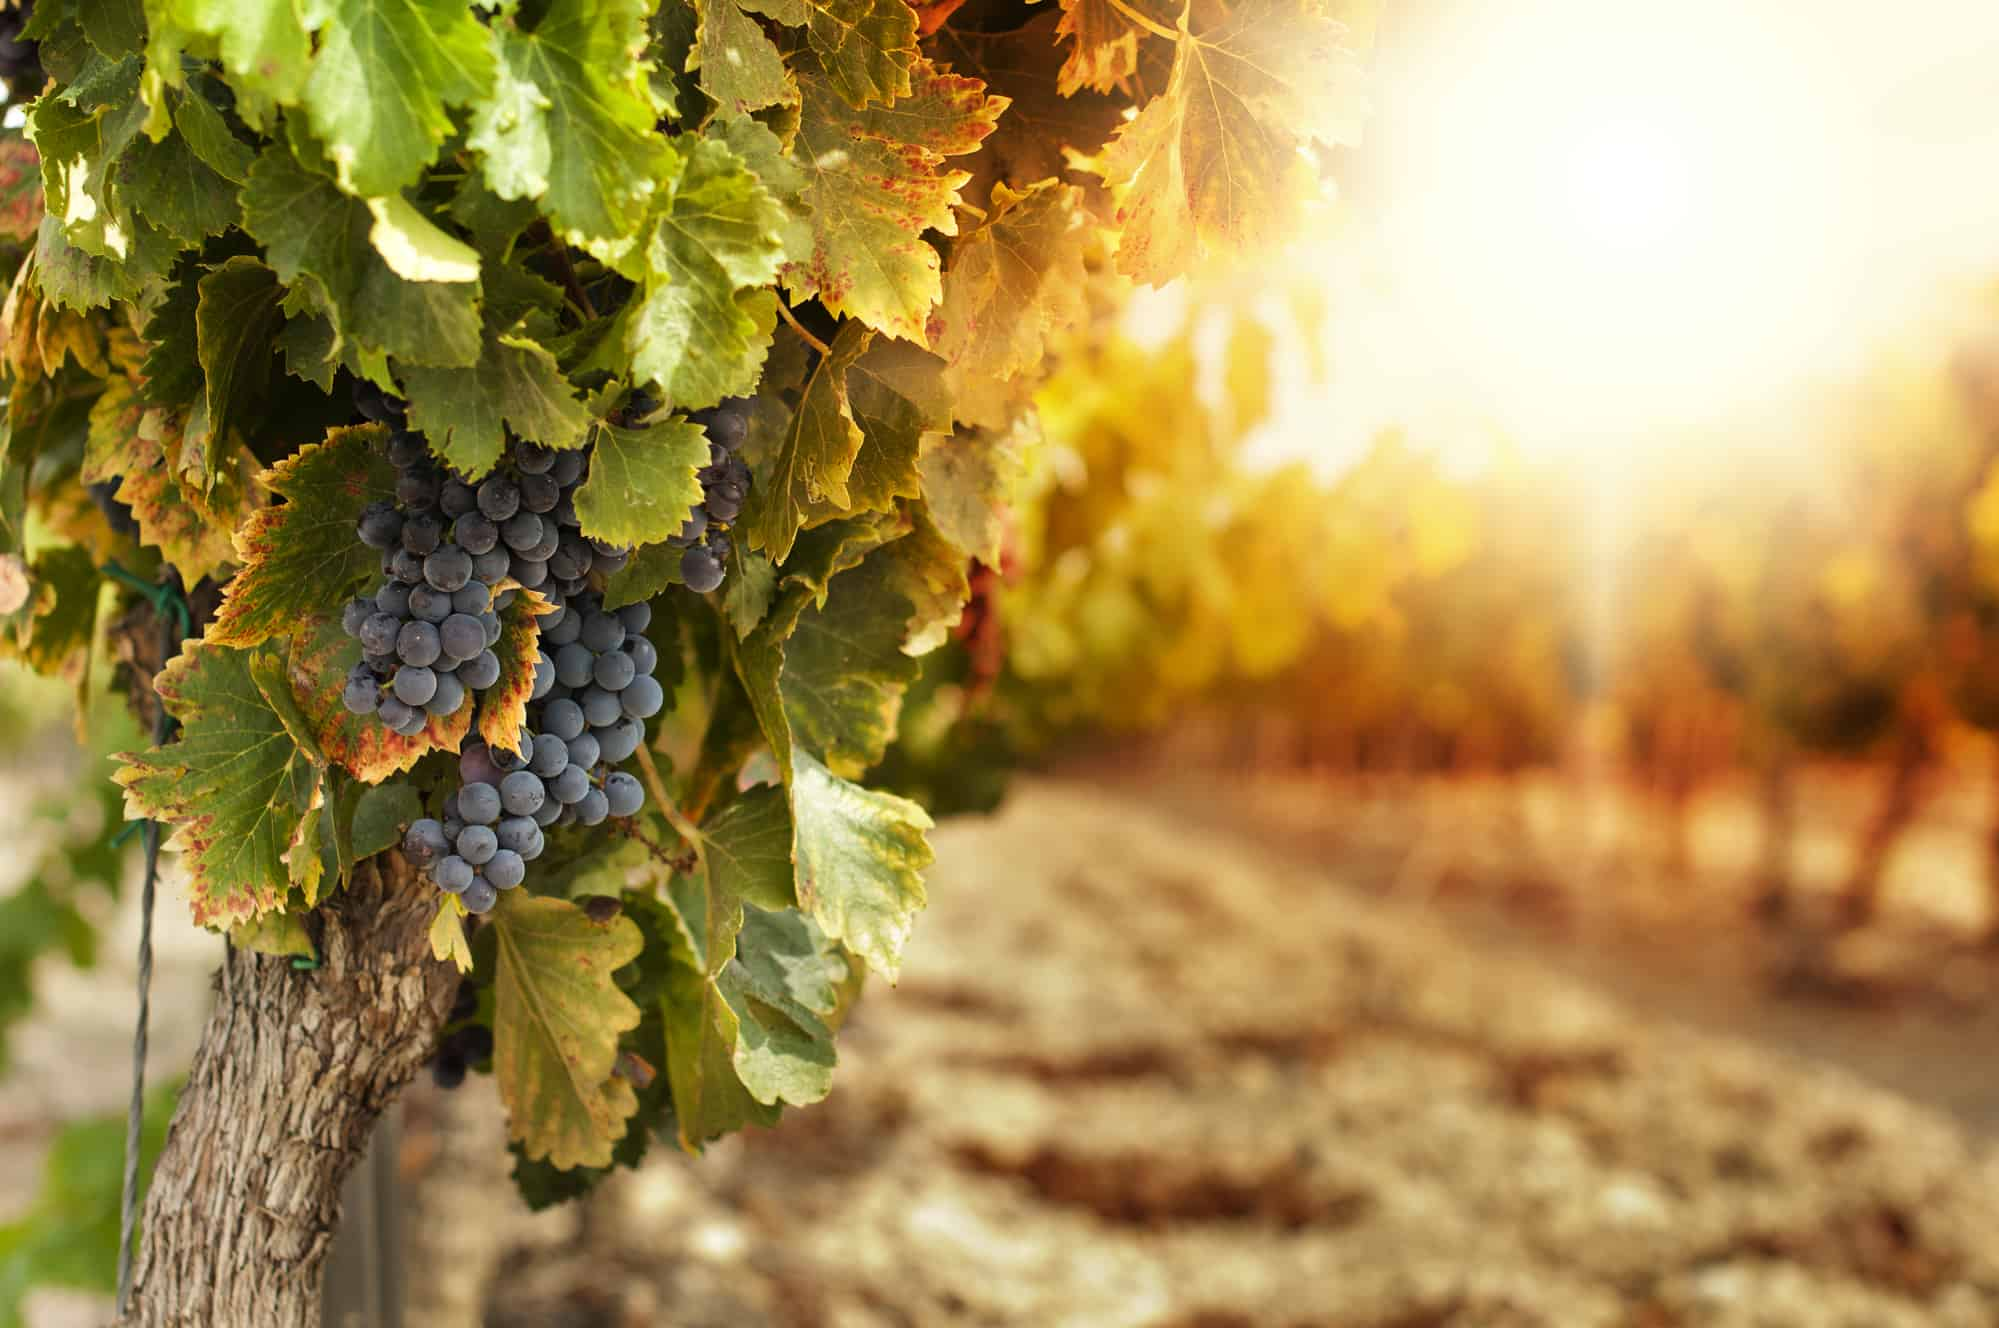 Vineyards at sunset in autumn harvest of grapes